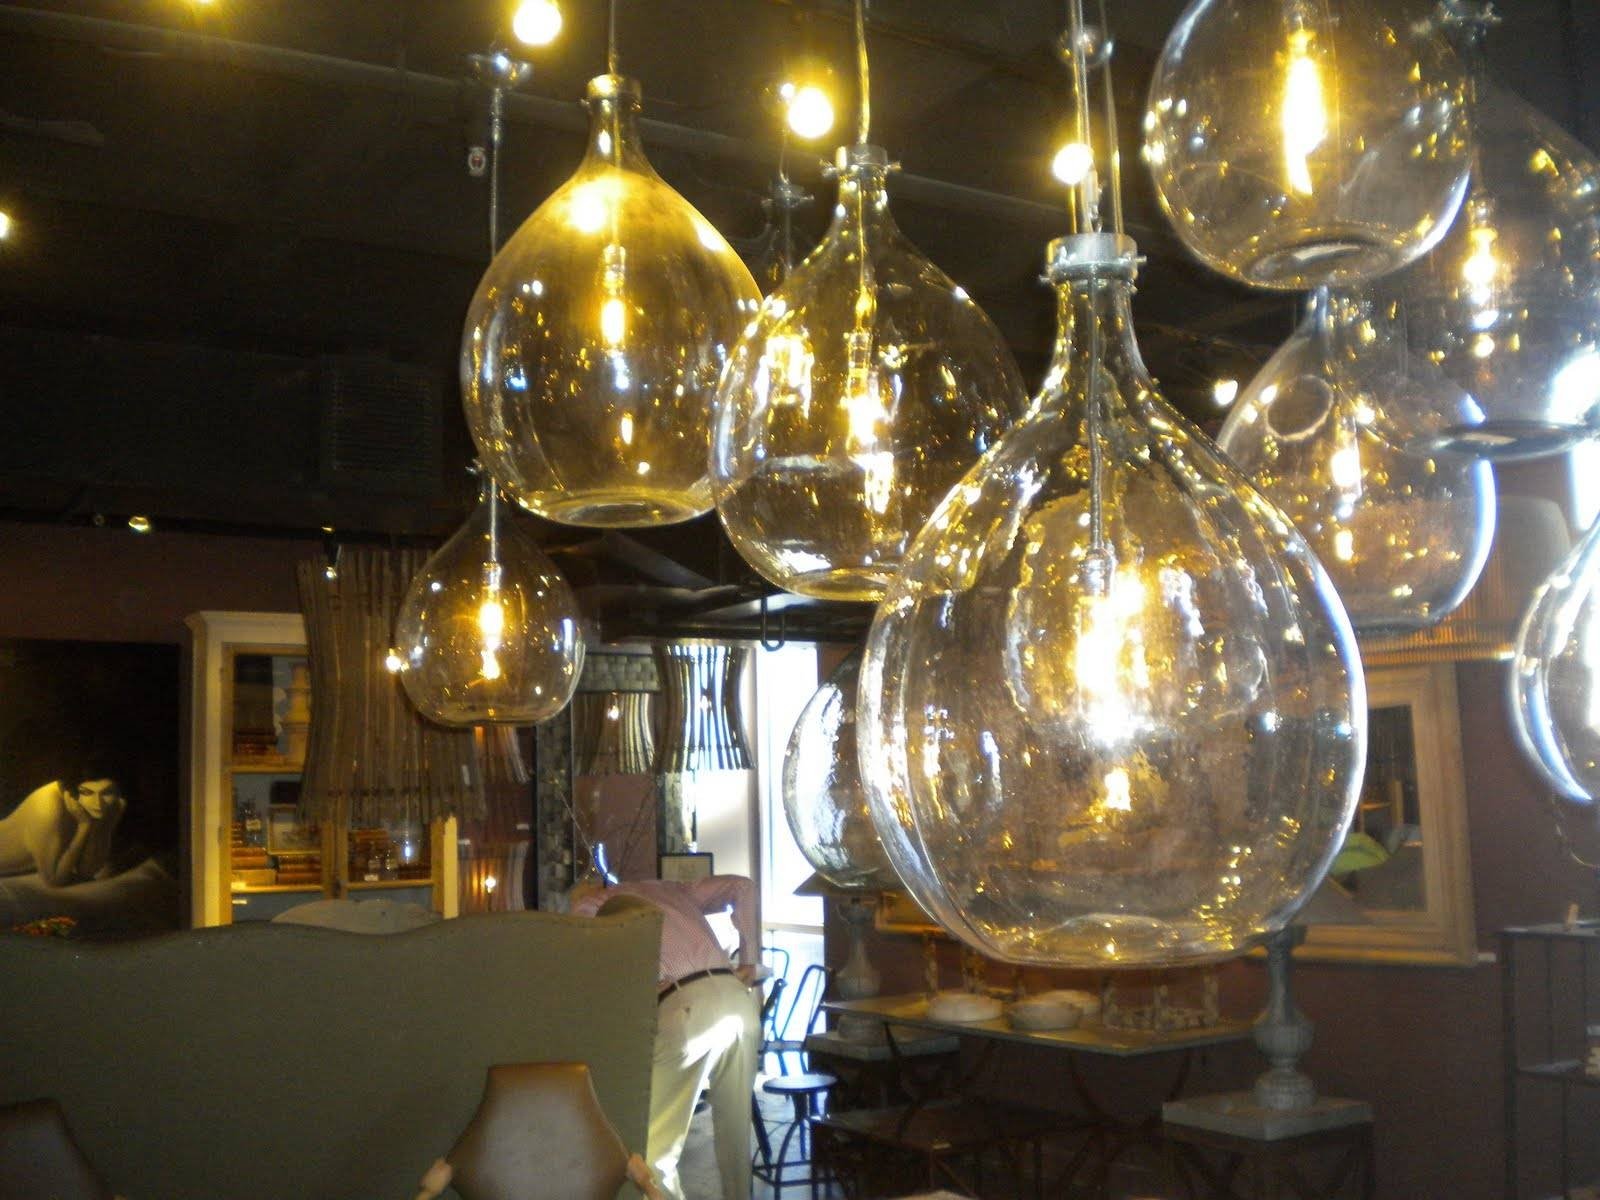 Decorating: Romantic Interior Home Design With Bobo Intriguing in Wine Jug Pendant Lights (Image 7 of 15)